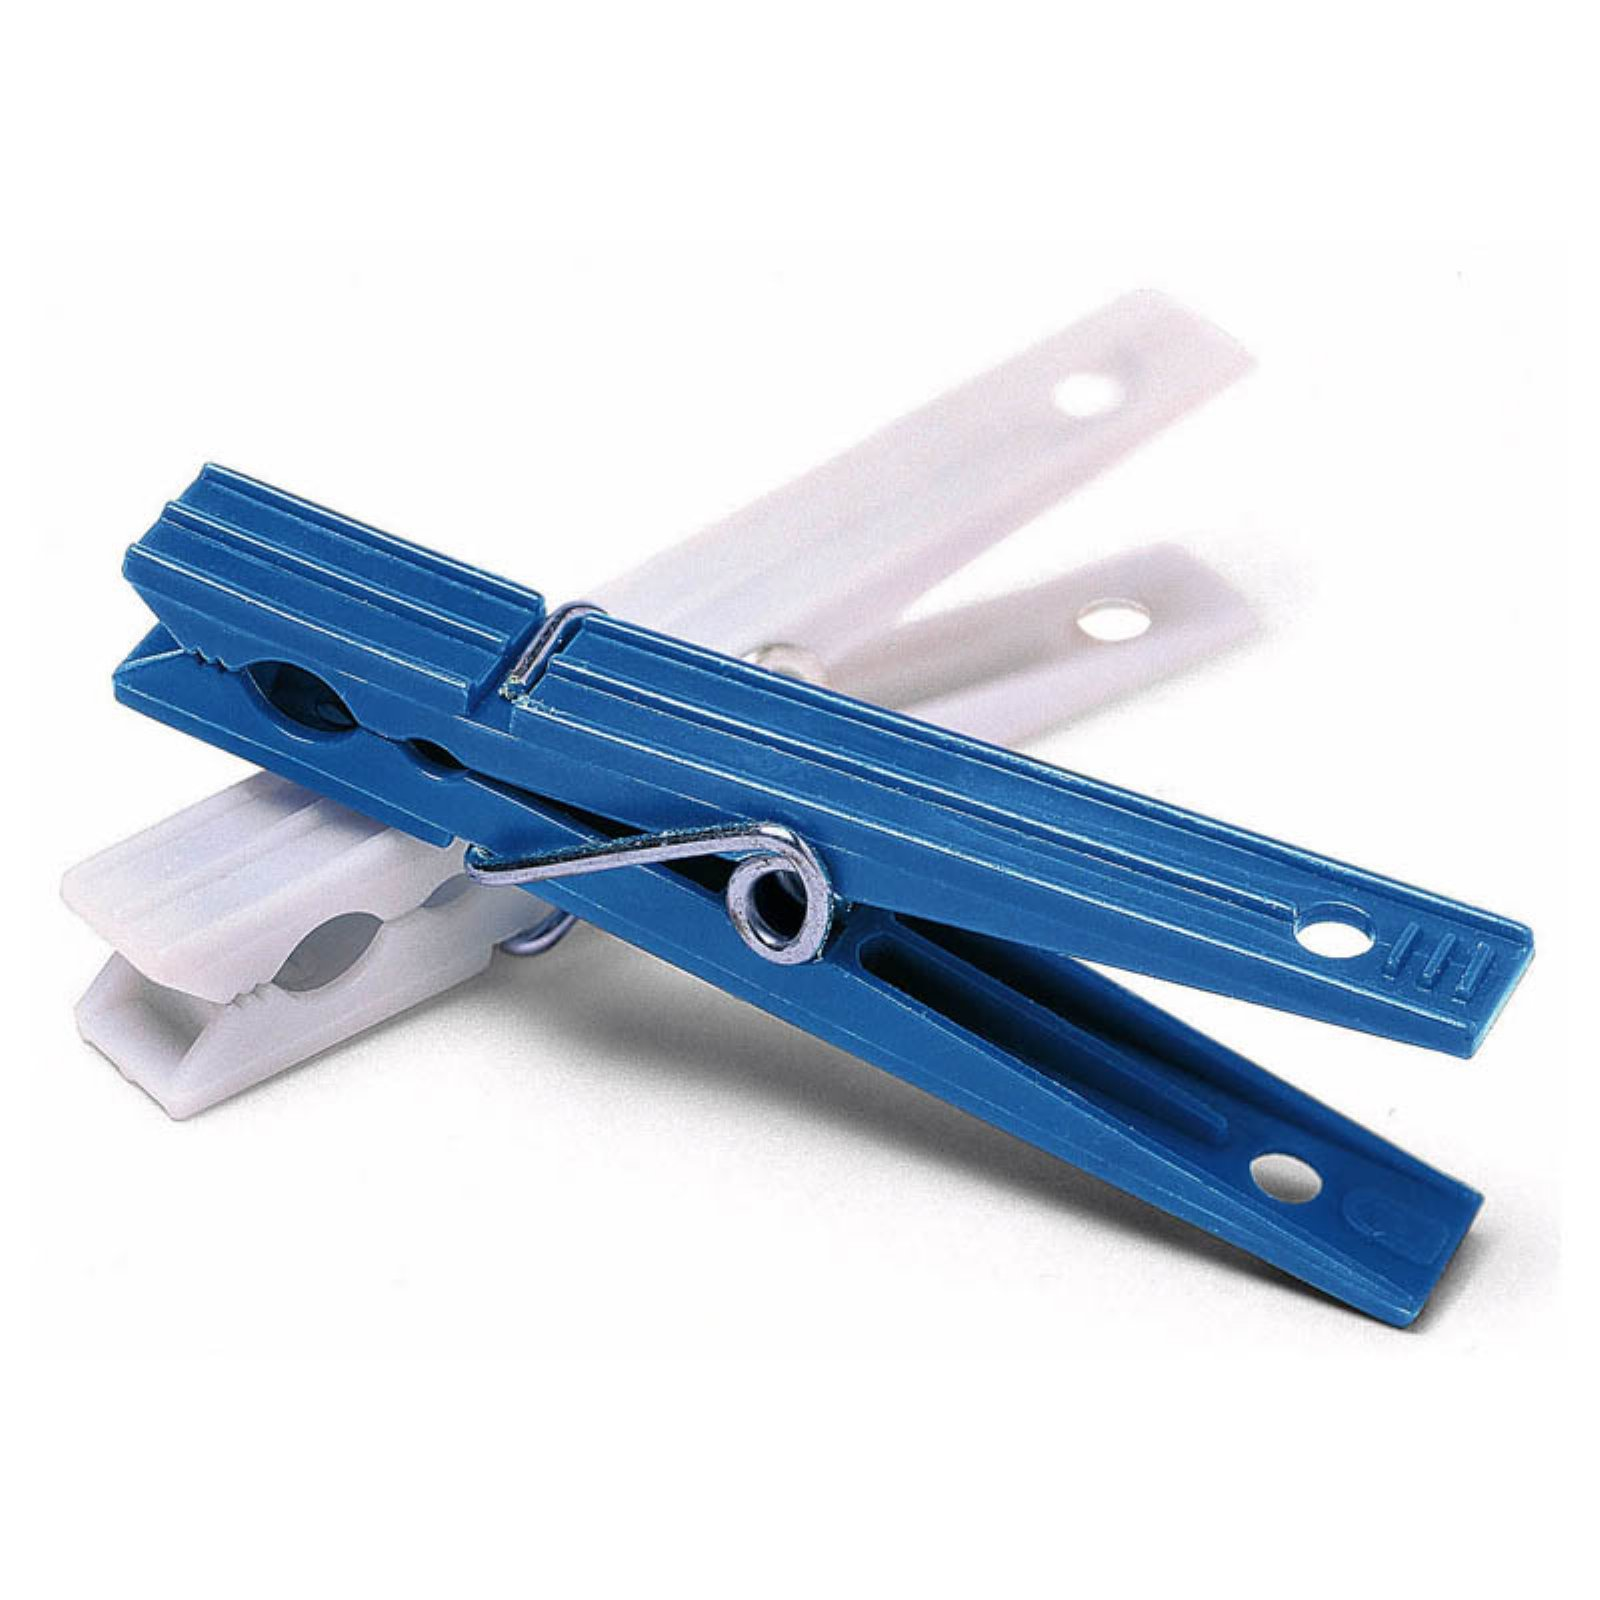 Whitmor Plastic Clothespins Blue & White Set of 50